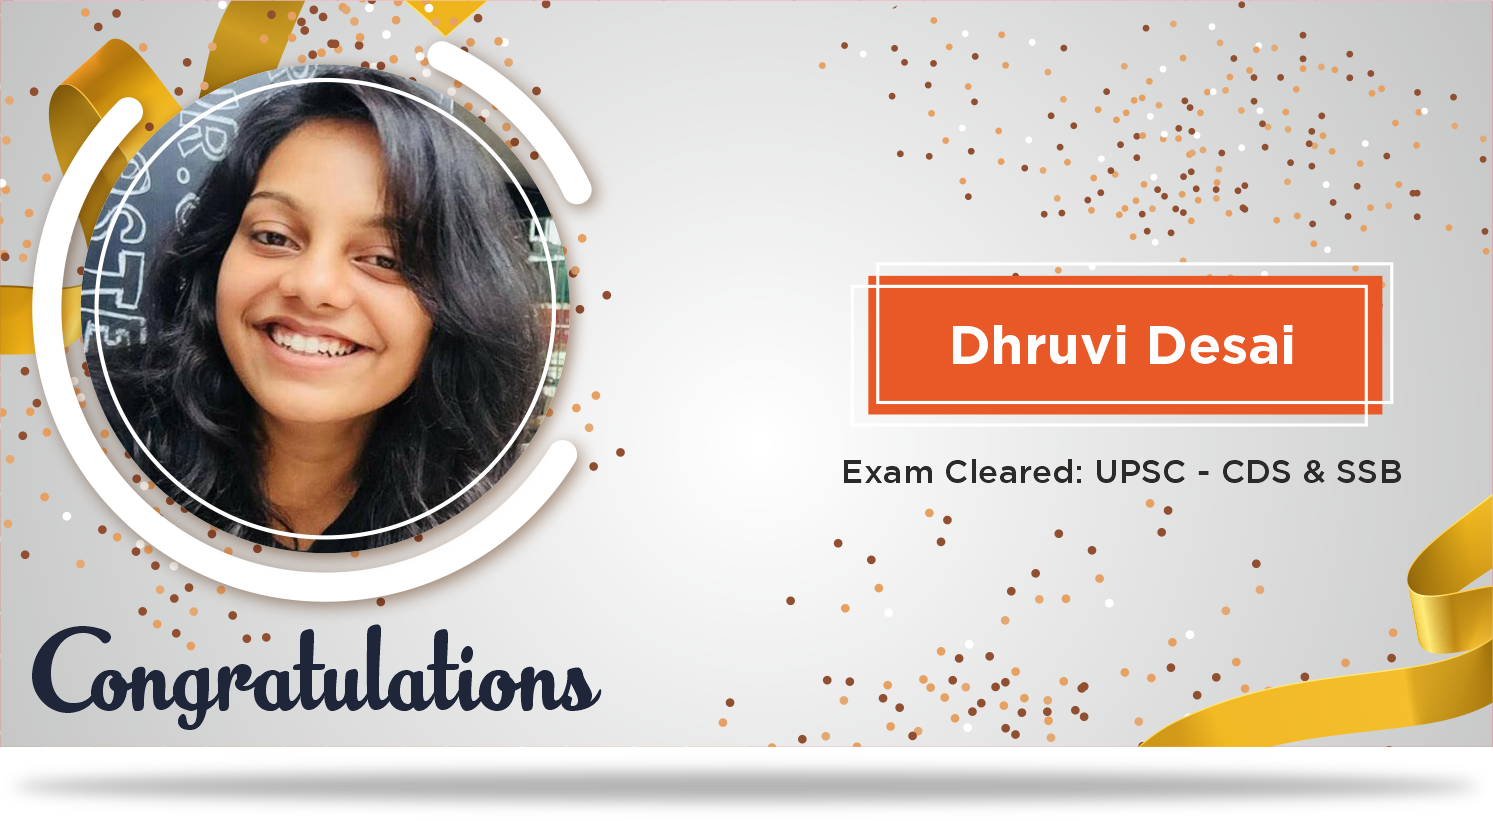 congrats-dhruvi-desai-guidance-group